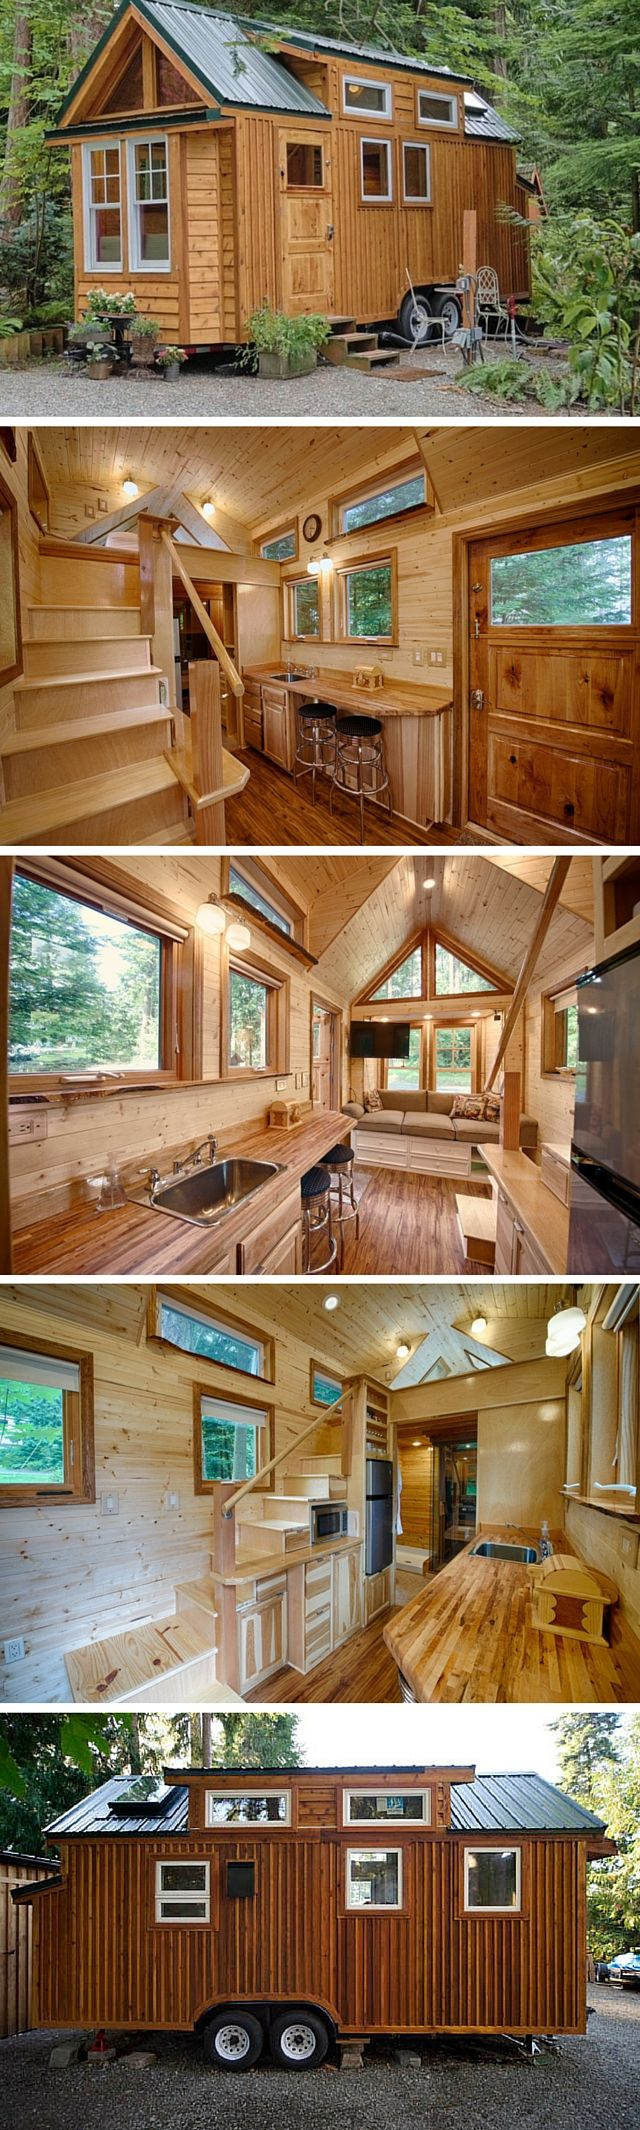 best 25 inside tiny houses ideas on pinterest mini homes park the hope island cottage a 170 sq ft tiny house on wheels there s actually